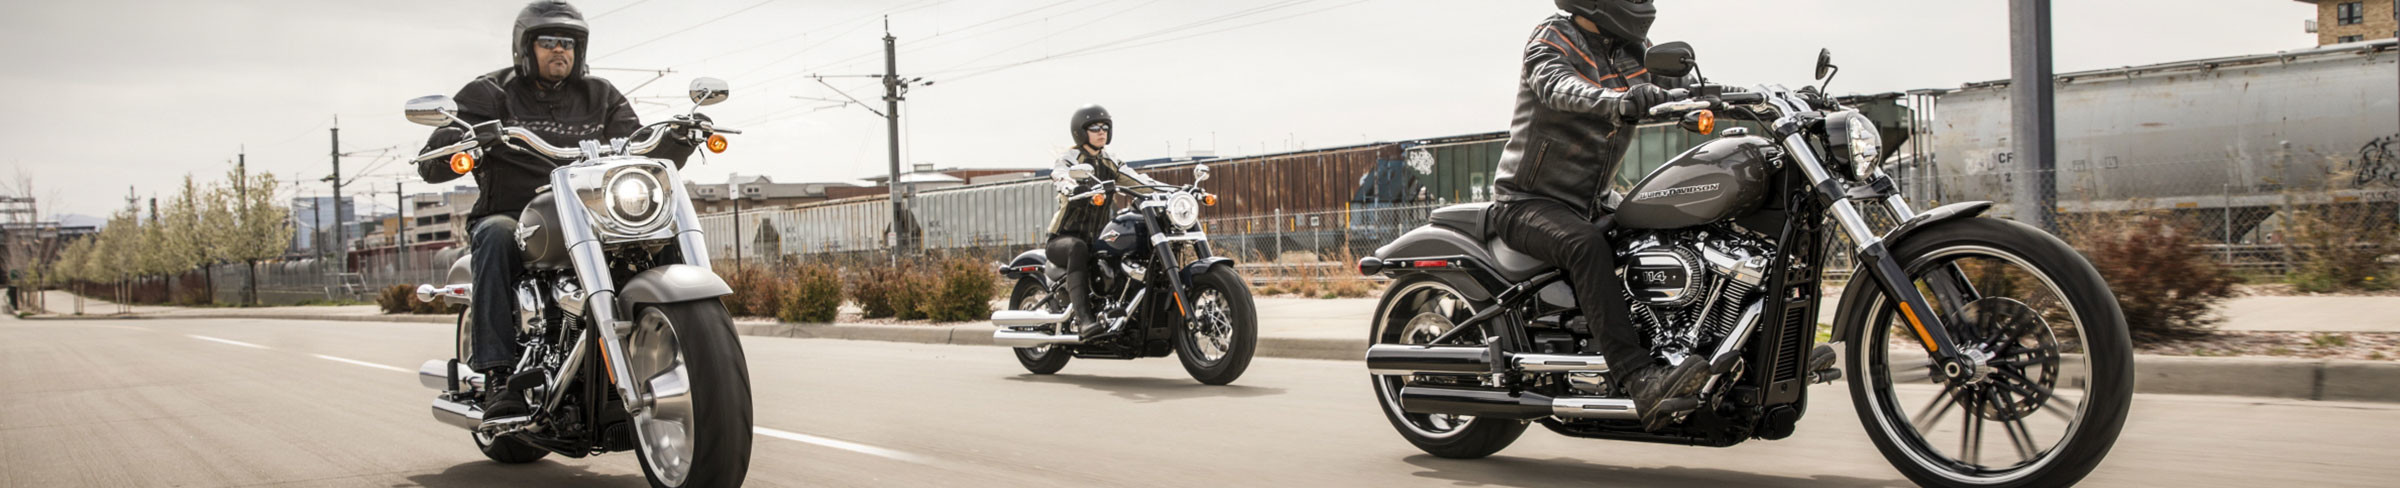 Employment Opportunities at Halls H-D®